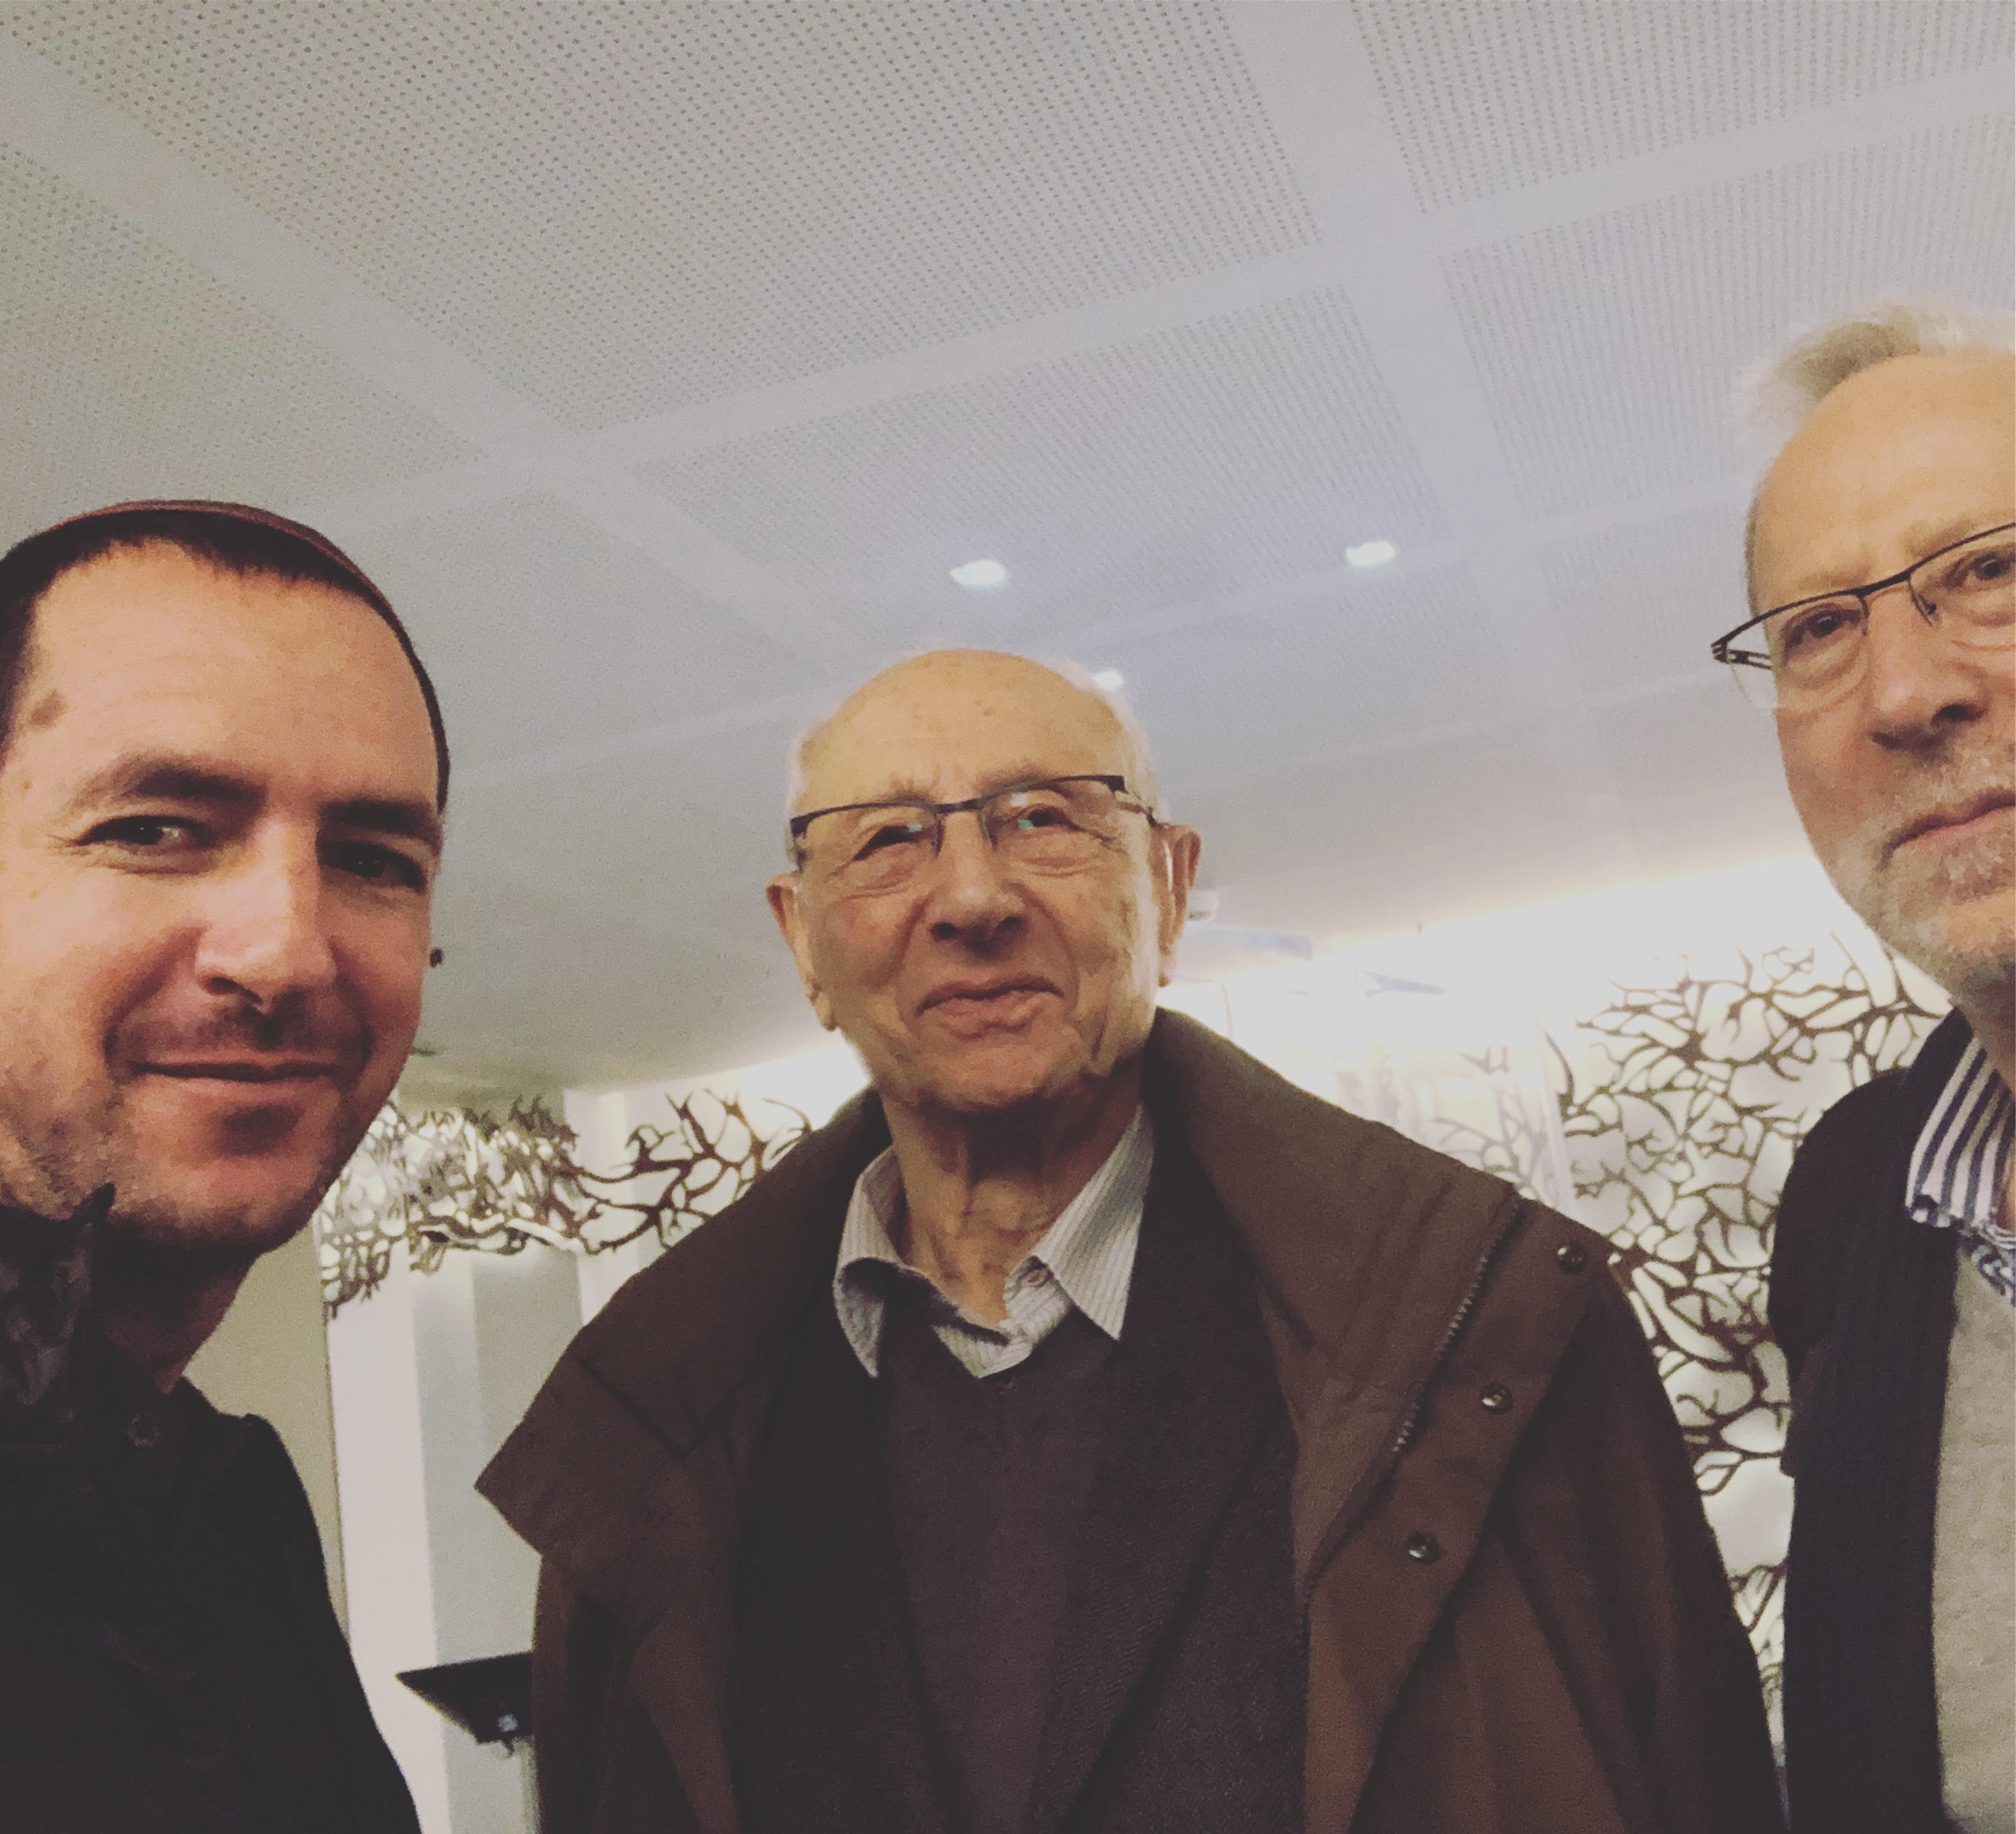 <b>Talking State Of The Heart with Alfred Dreyfus's family</b><br>